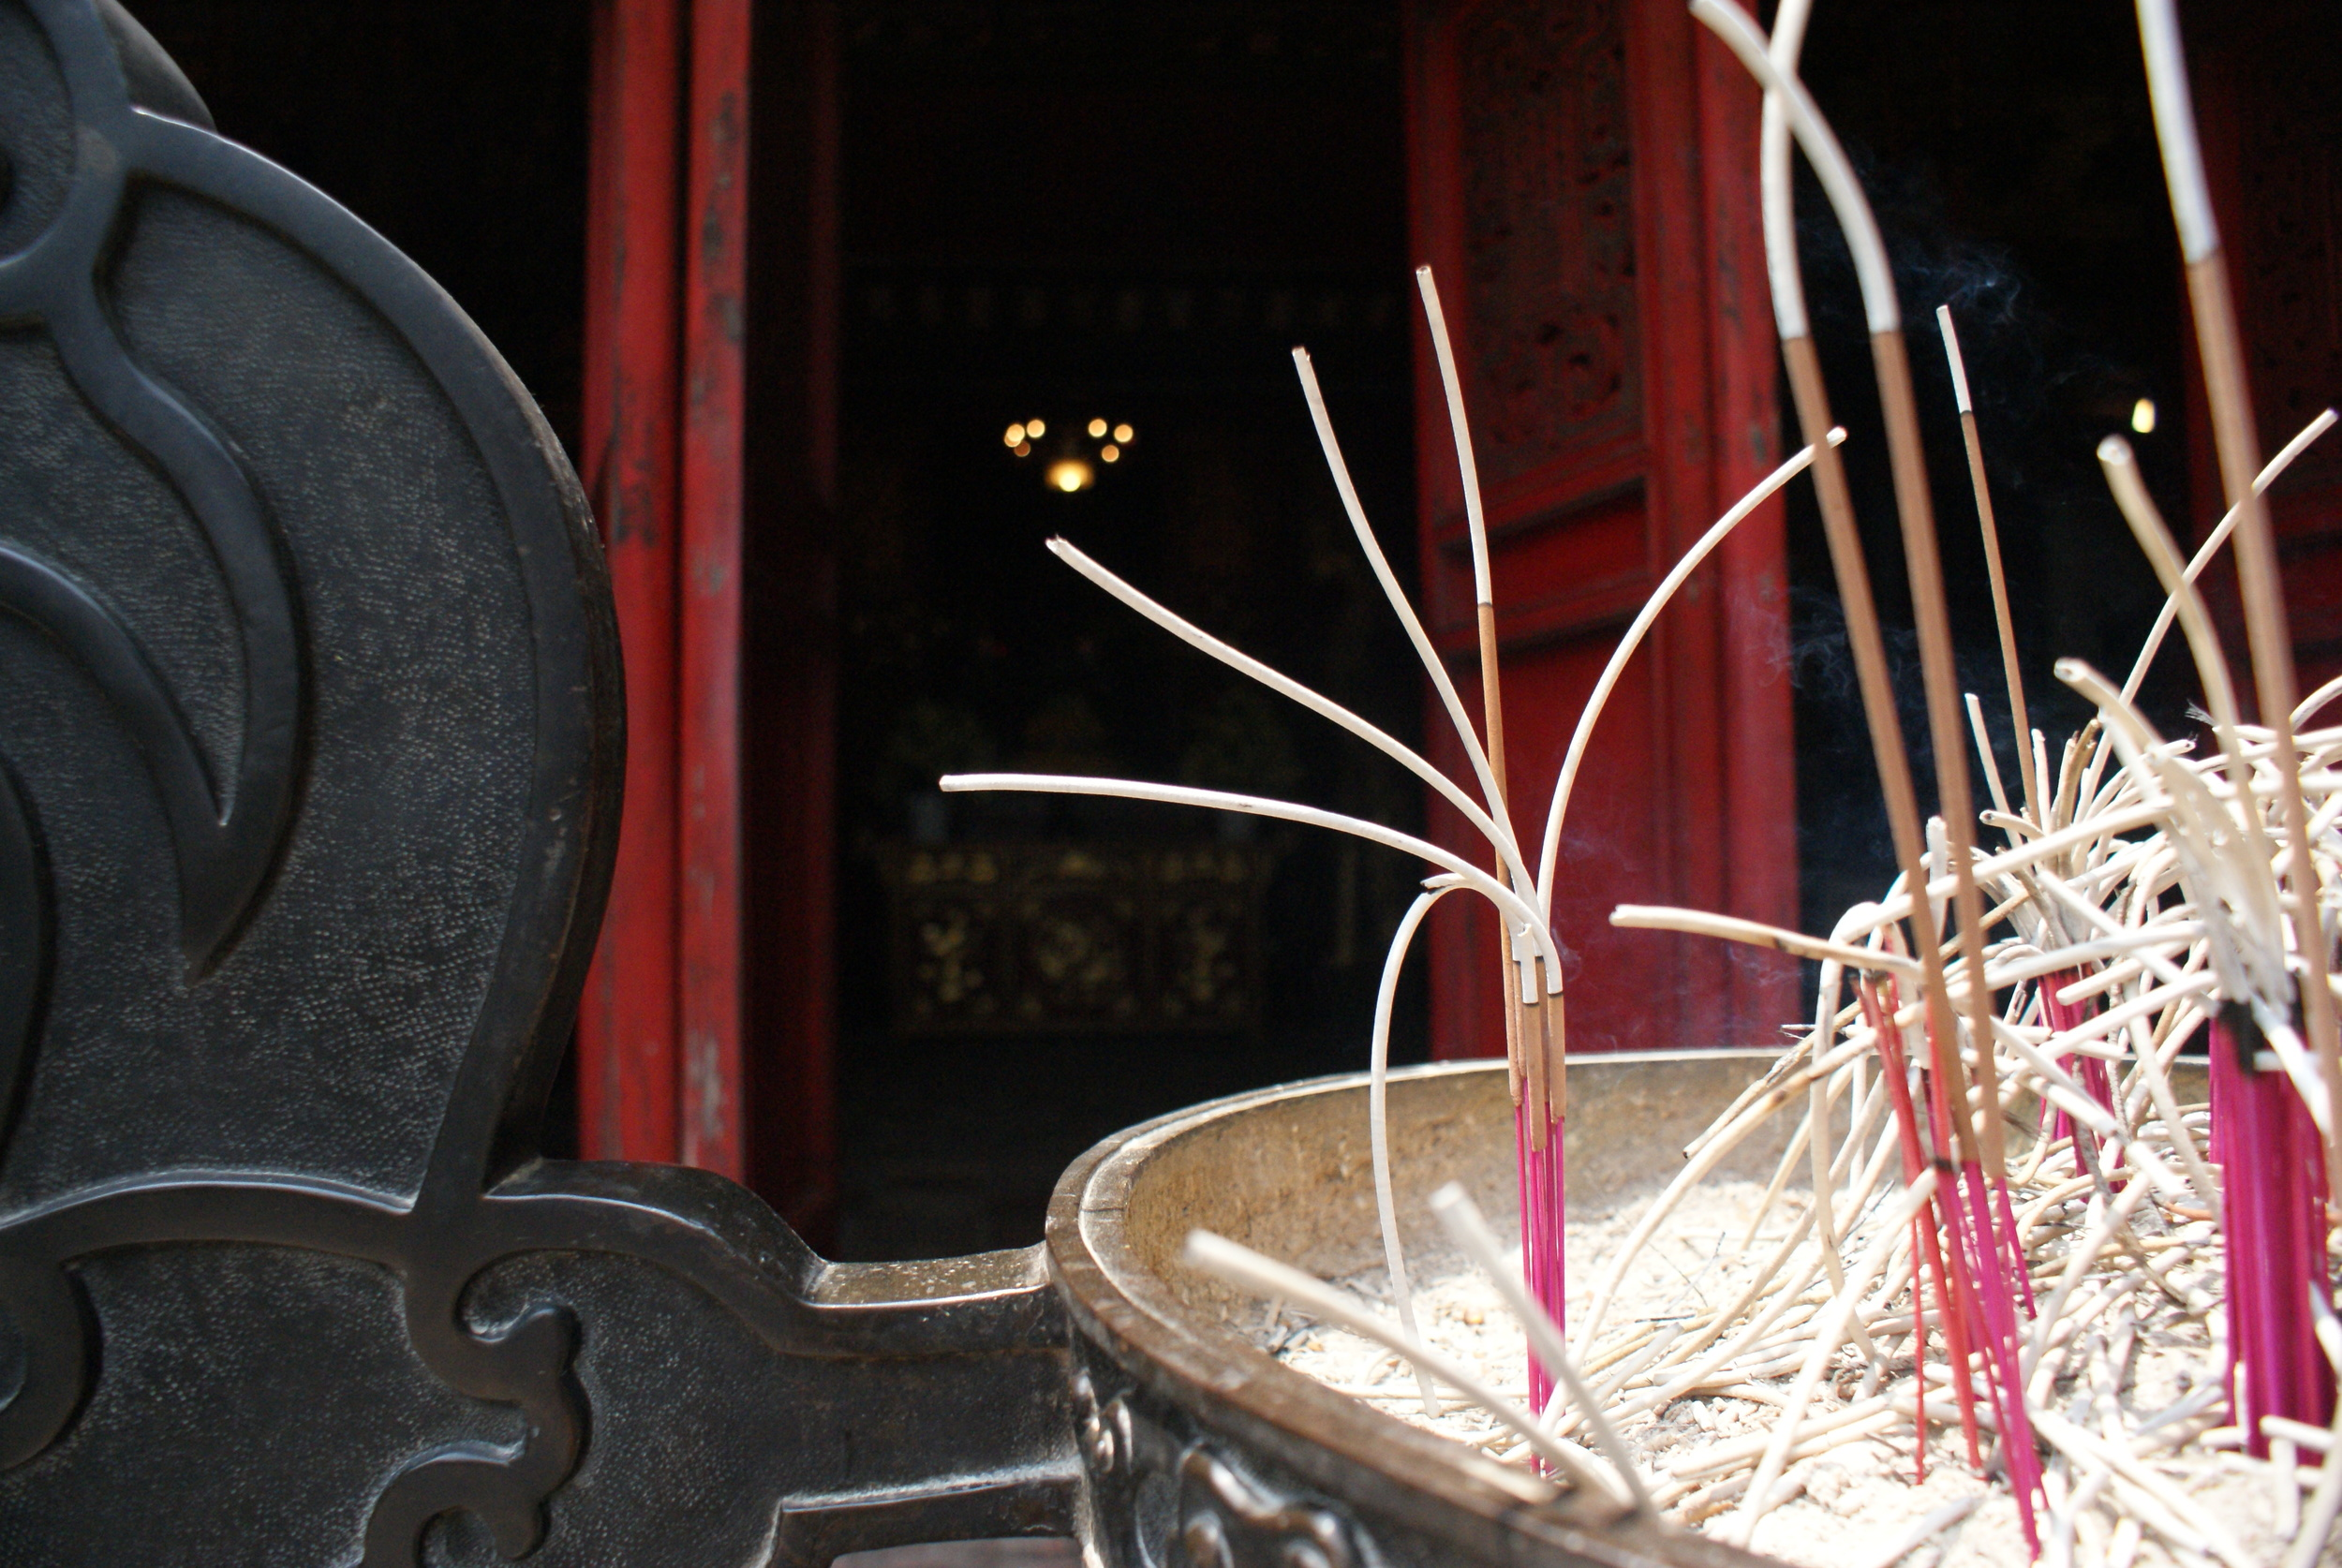 Burned incense at the Ngoc Son Temple.